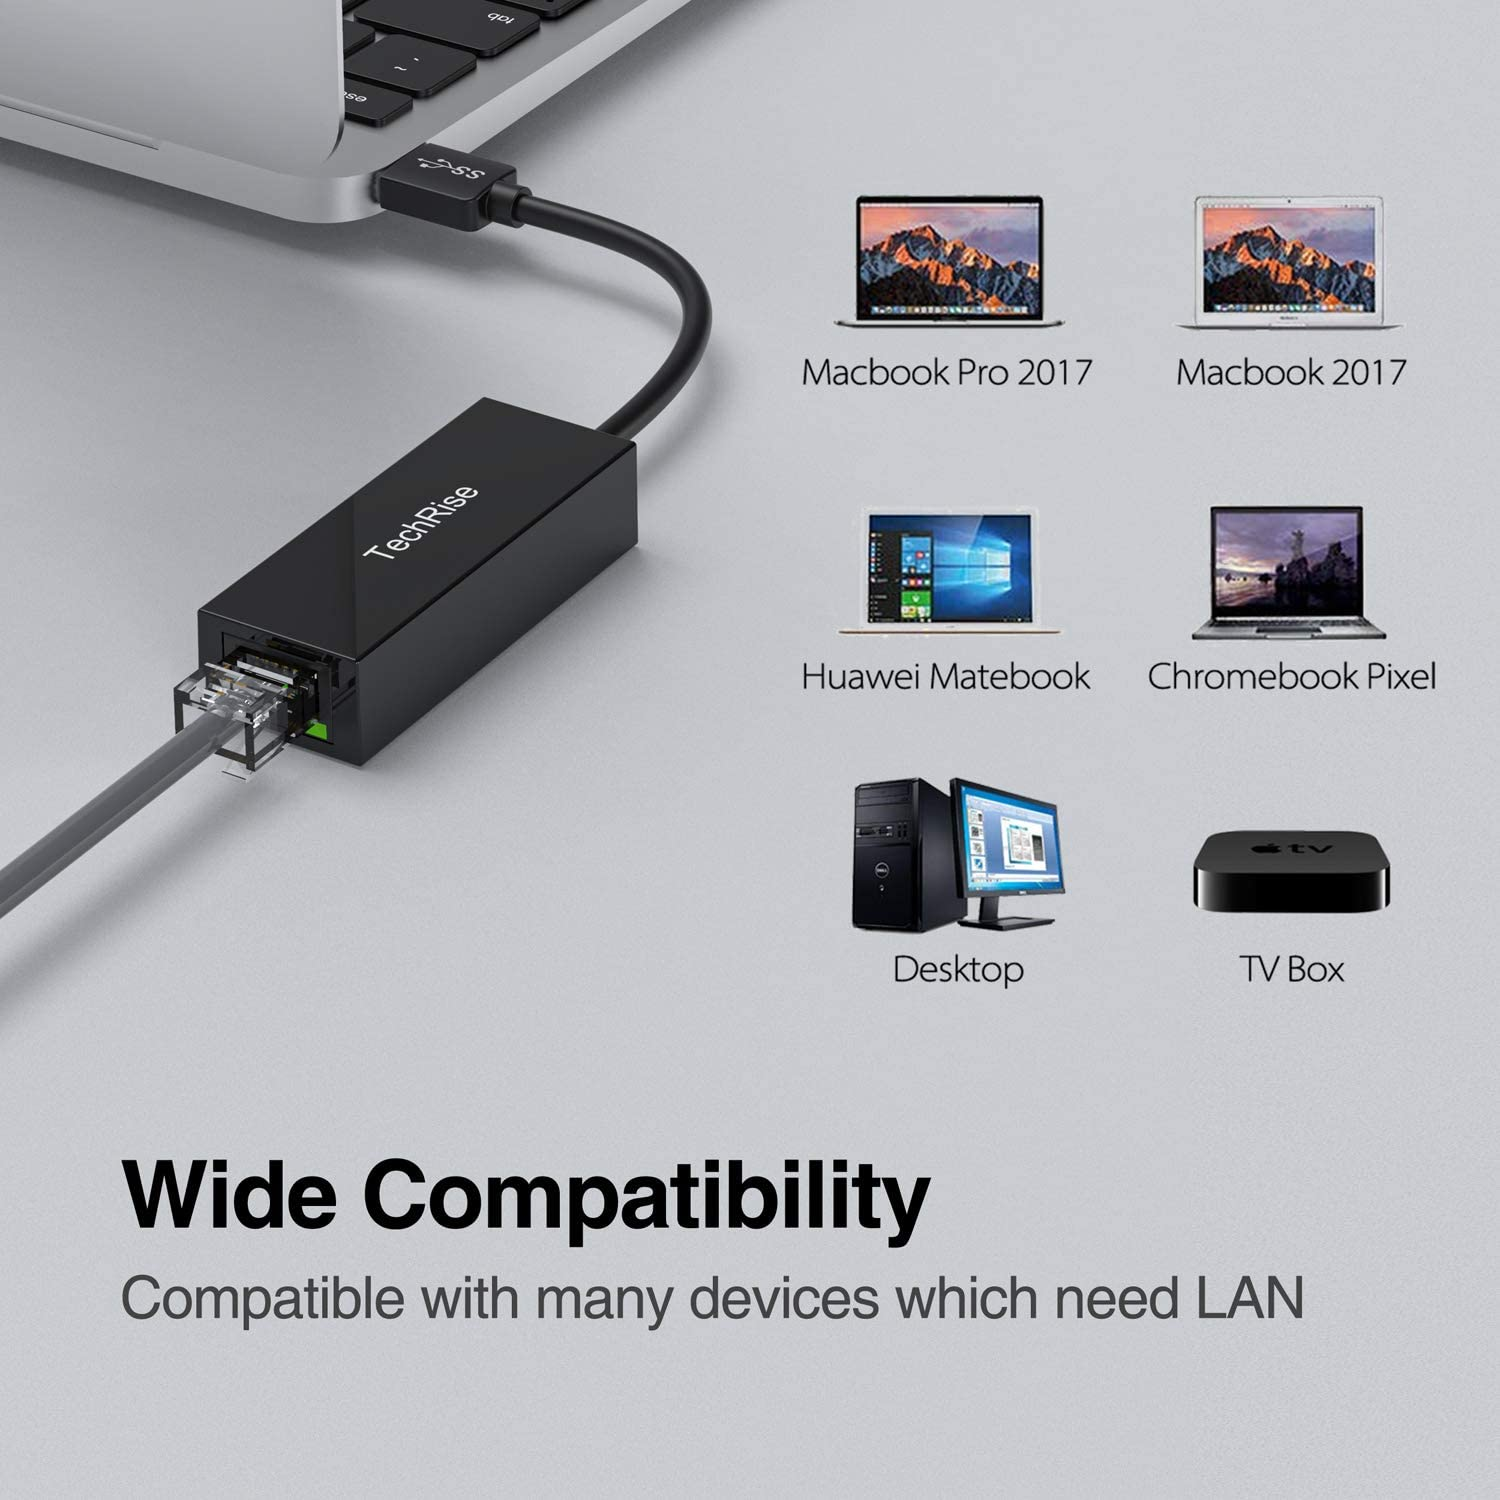 Windows 10//8.1//8//7//XP//Vista Linux TechRise Network Adapter USB 3.0 to Ethernet RJ45 LAN Gigabit Adapter for 10//100//1000 Mbps USB Ethernet Adapter Compatible with Mac OS X Chrome OS